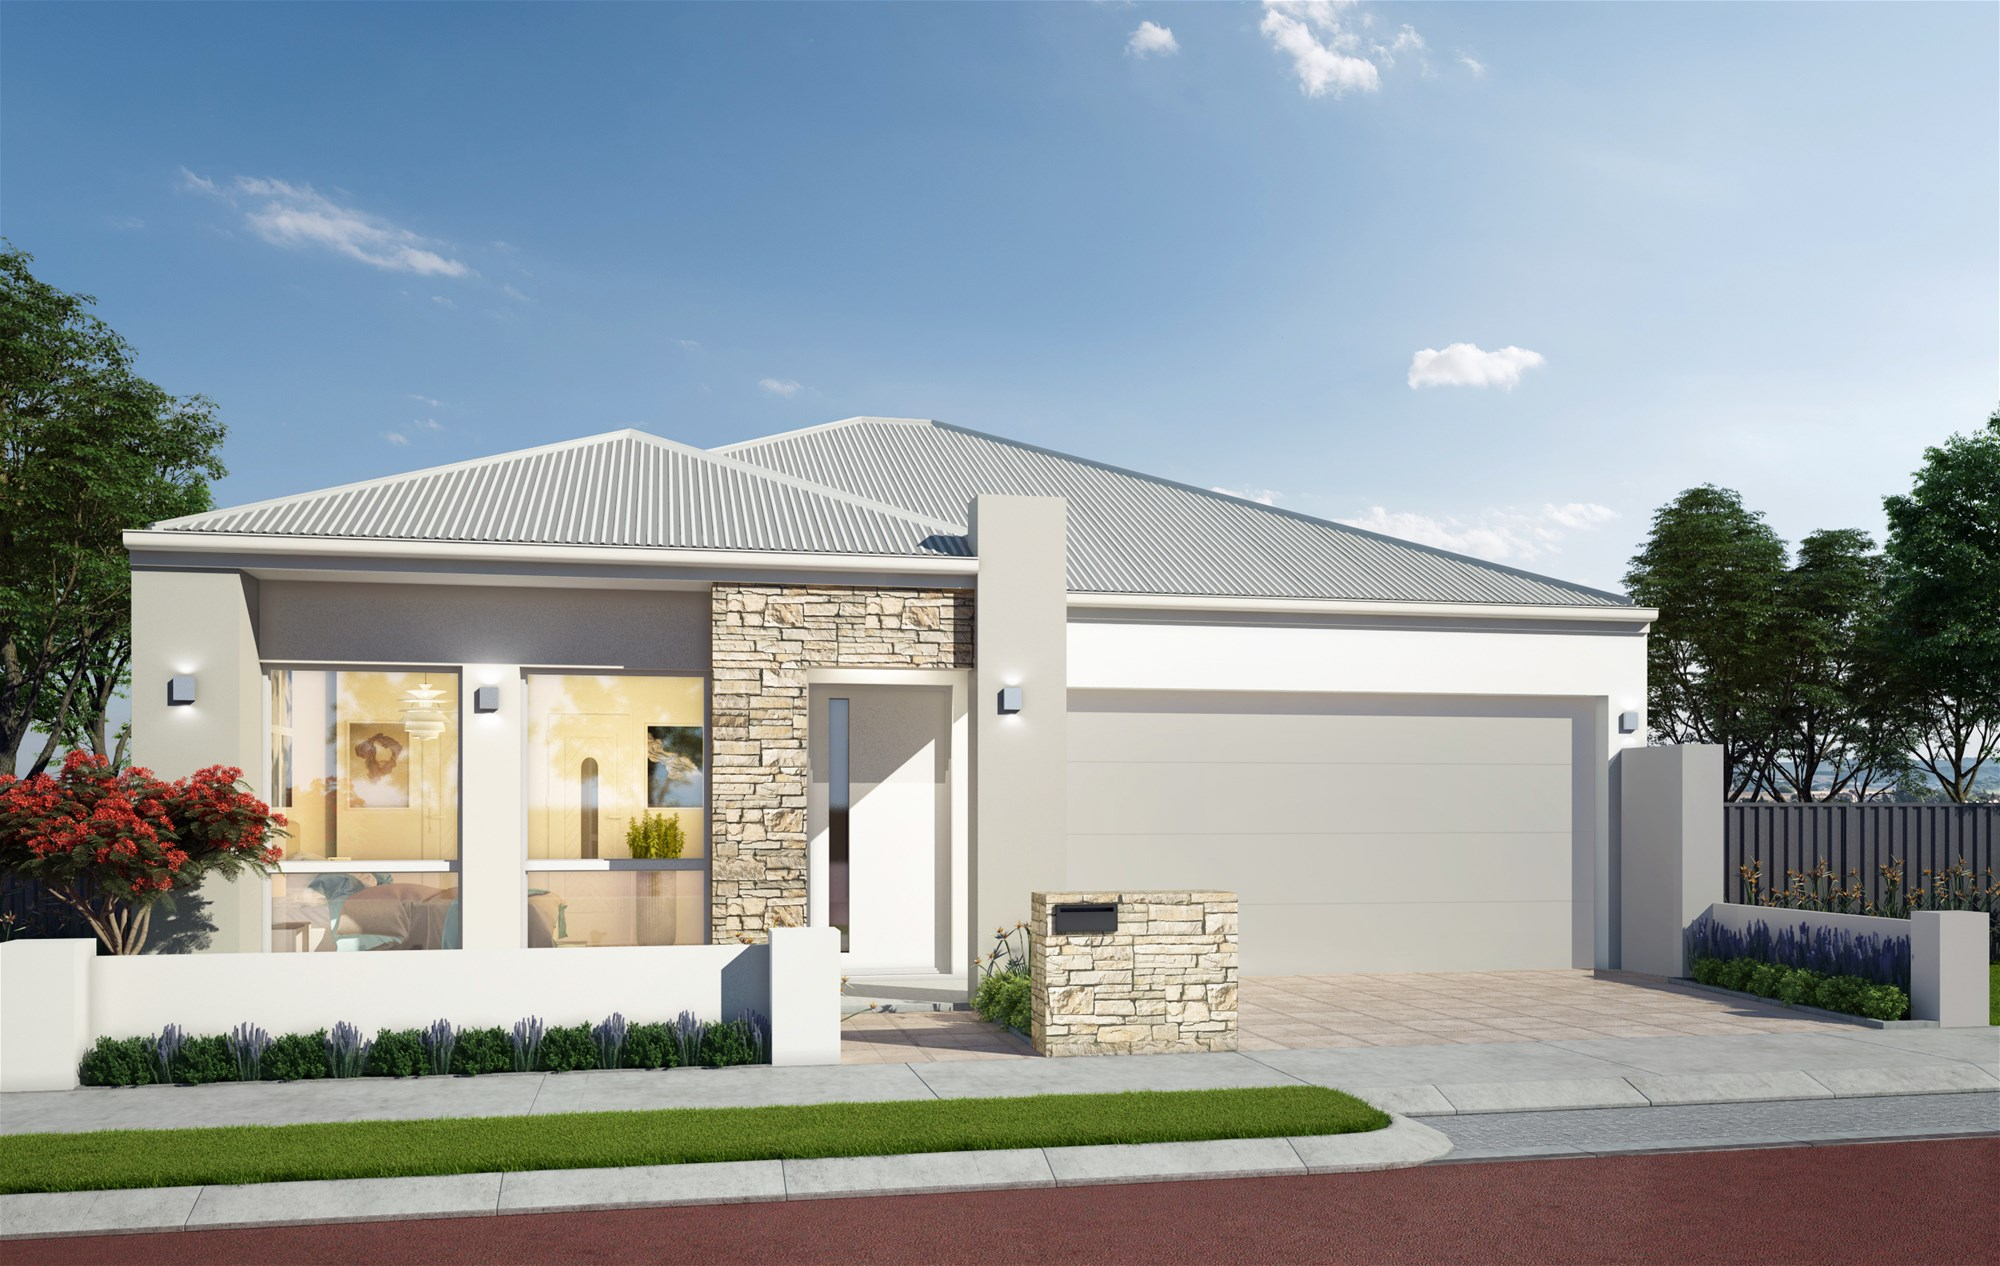 Fully Completed 3 Bedroom Home - You Own It!